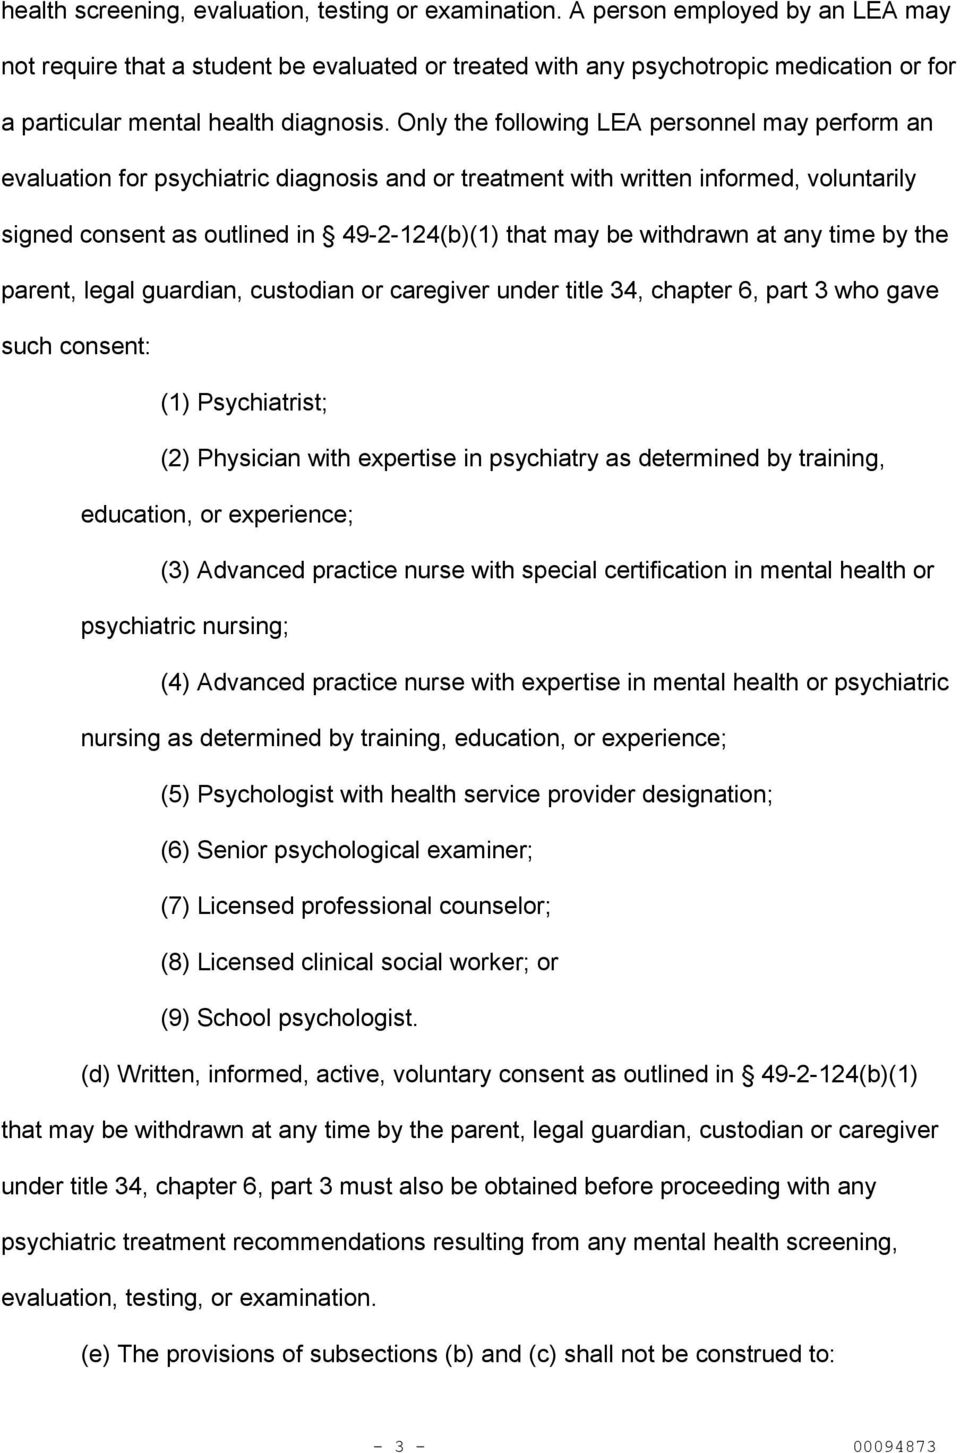 Only the following LEA personnel may perform an evaluation for psychiatric diagnosis and or treatment with written informed, voluntarily signed consent as outlined in 49-2-124(b)(1) that may be